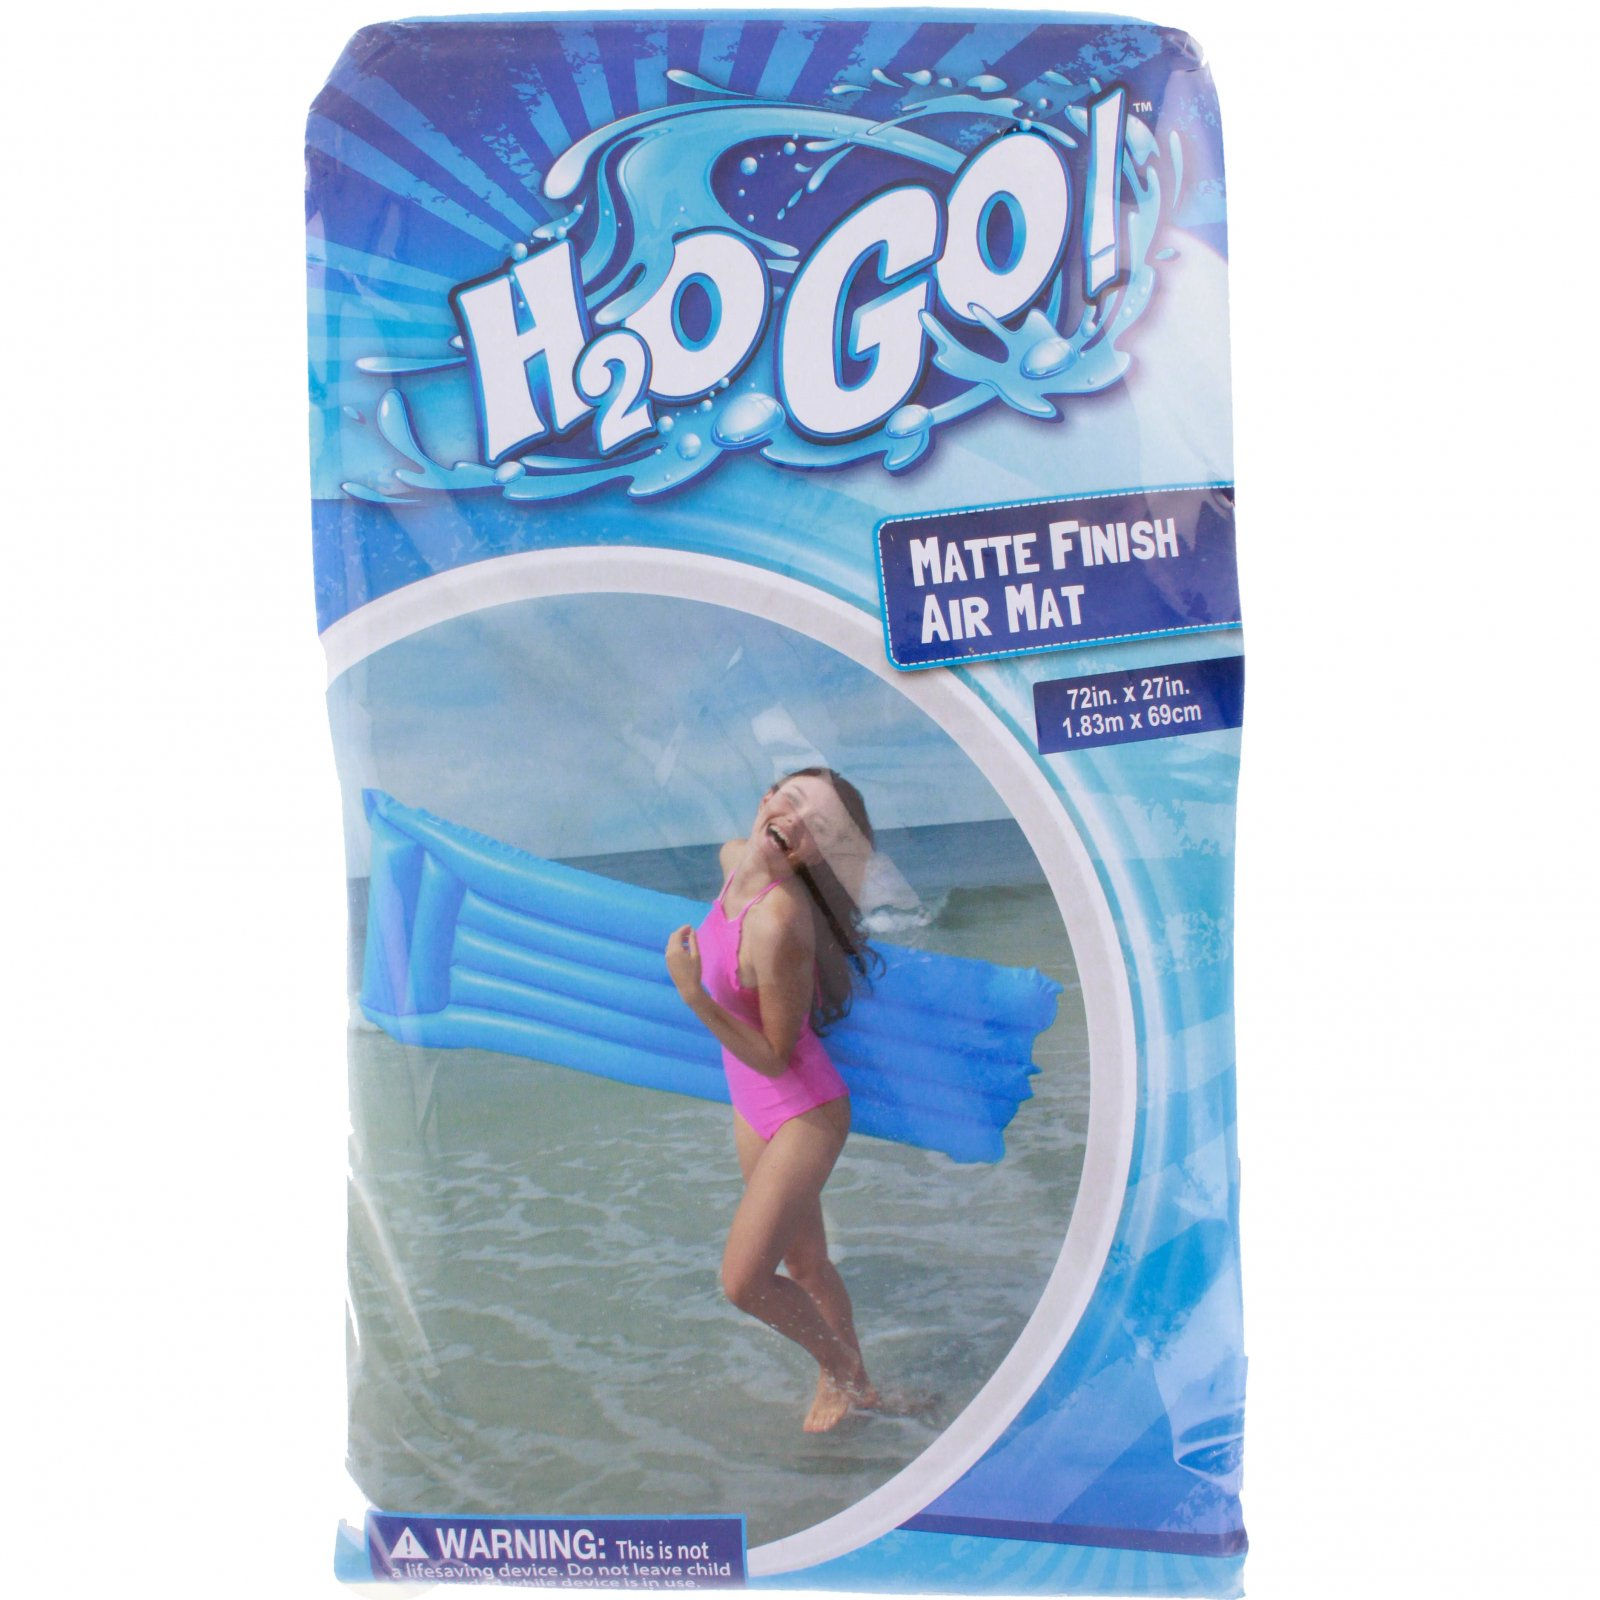 H2OGO! Matte Finish Air Mat Inflatable Pool Float - Blue